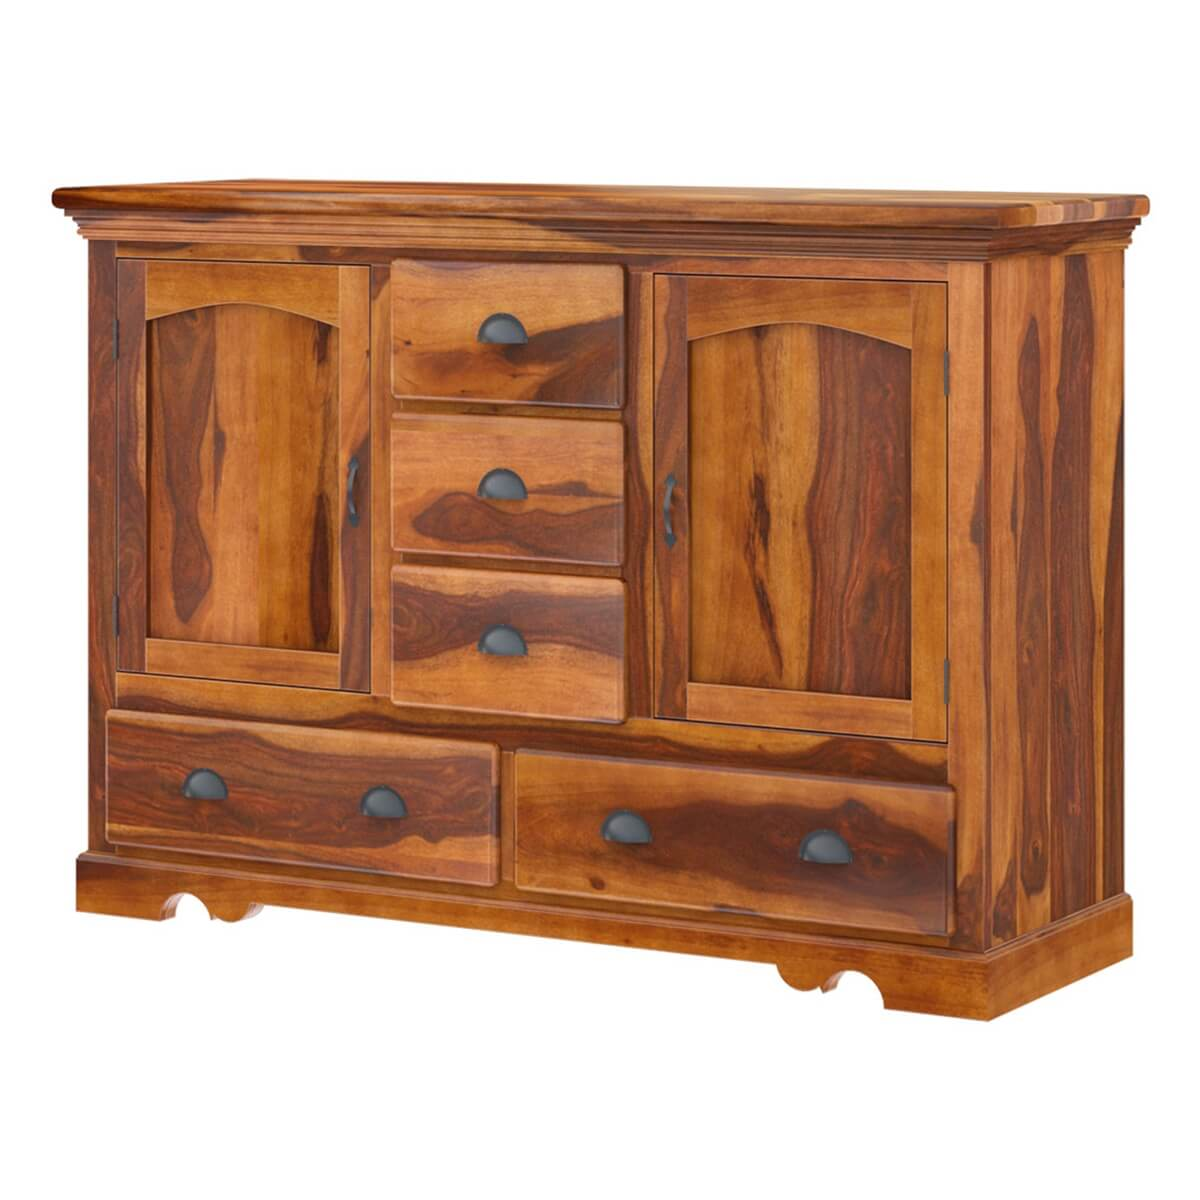 Rustic solid wood 5 drawer traditional dining room buffet for Dining room buffet